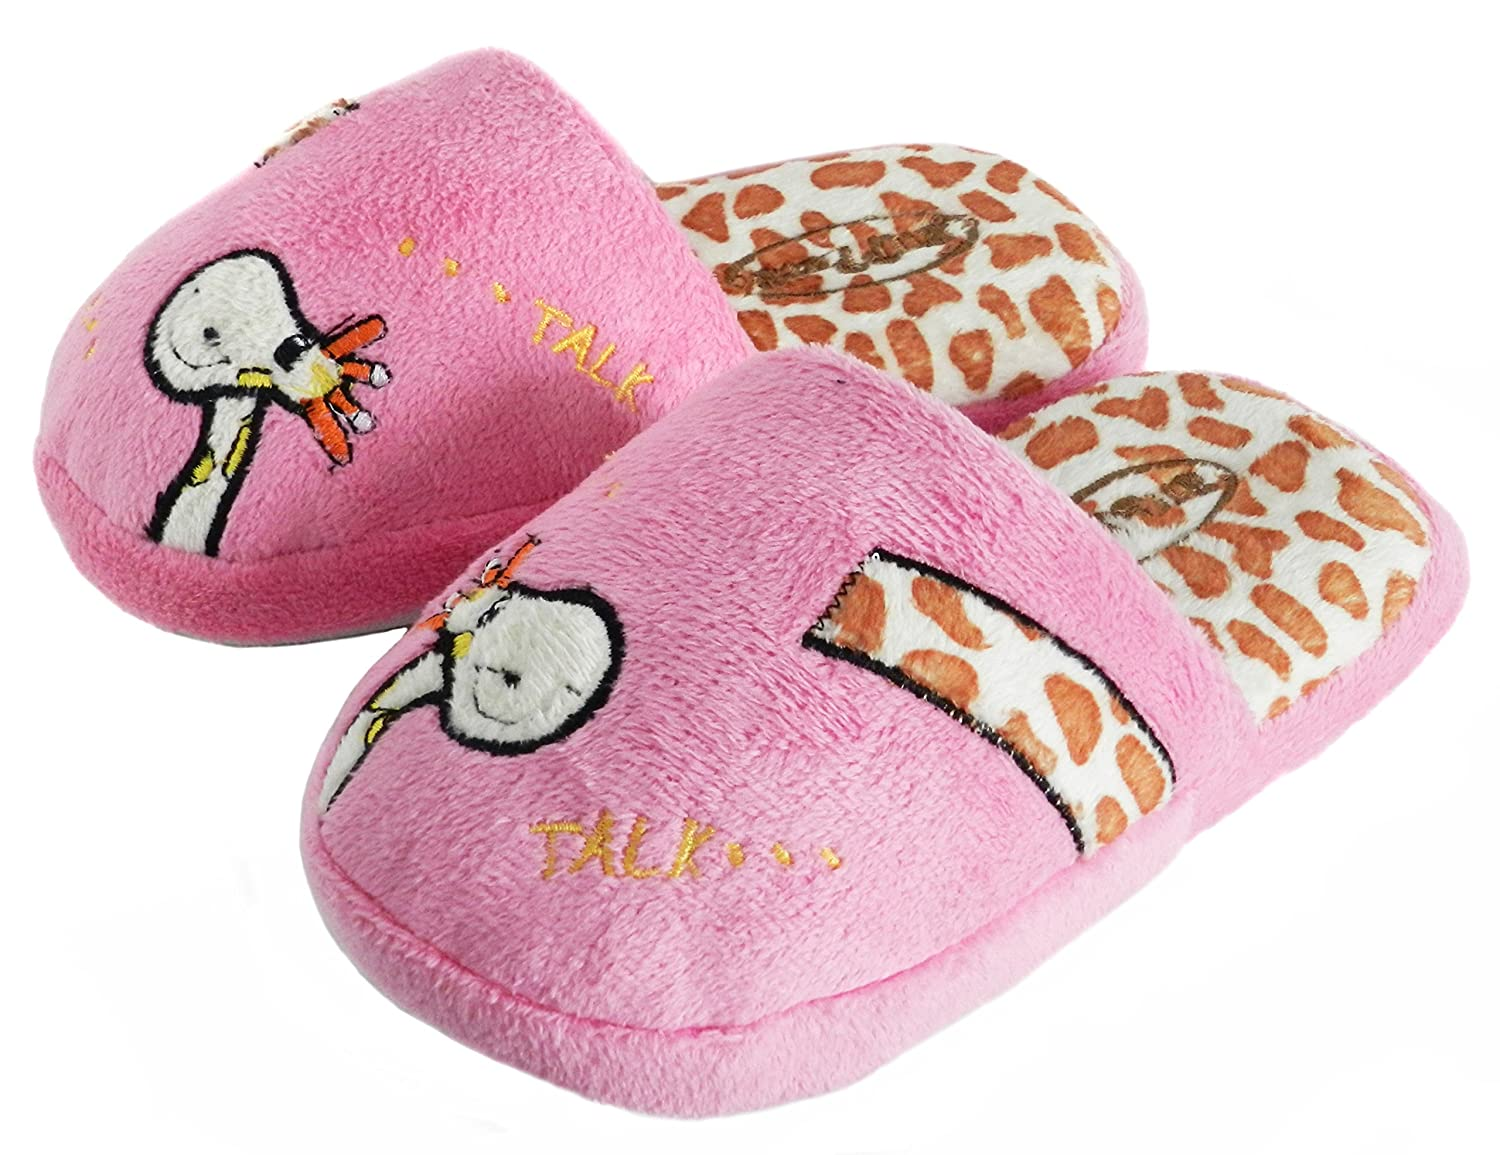 Toddler Kid Winter Slippers, Giraffe Print Giraffe Print (7.5-8.5 Blue)